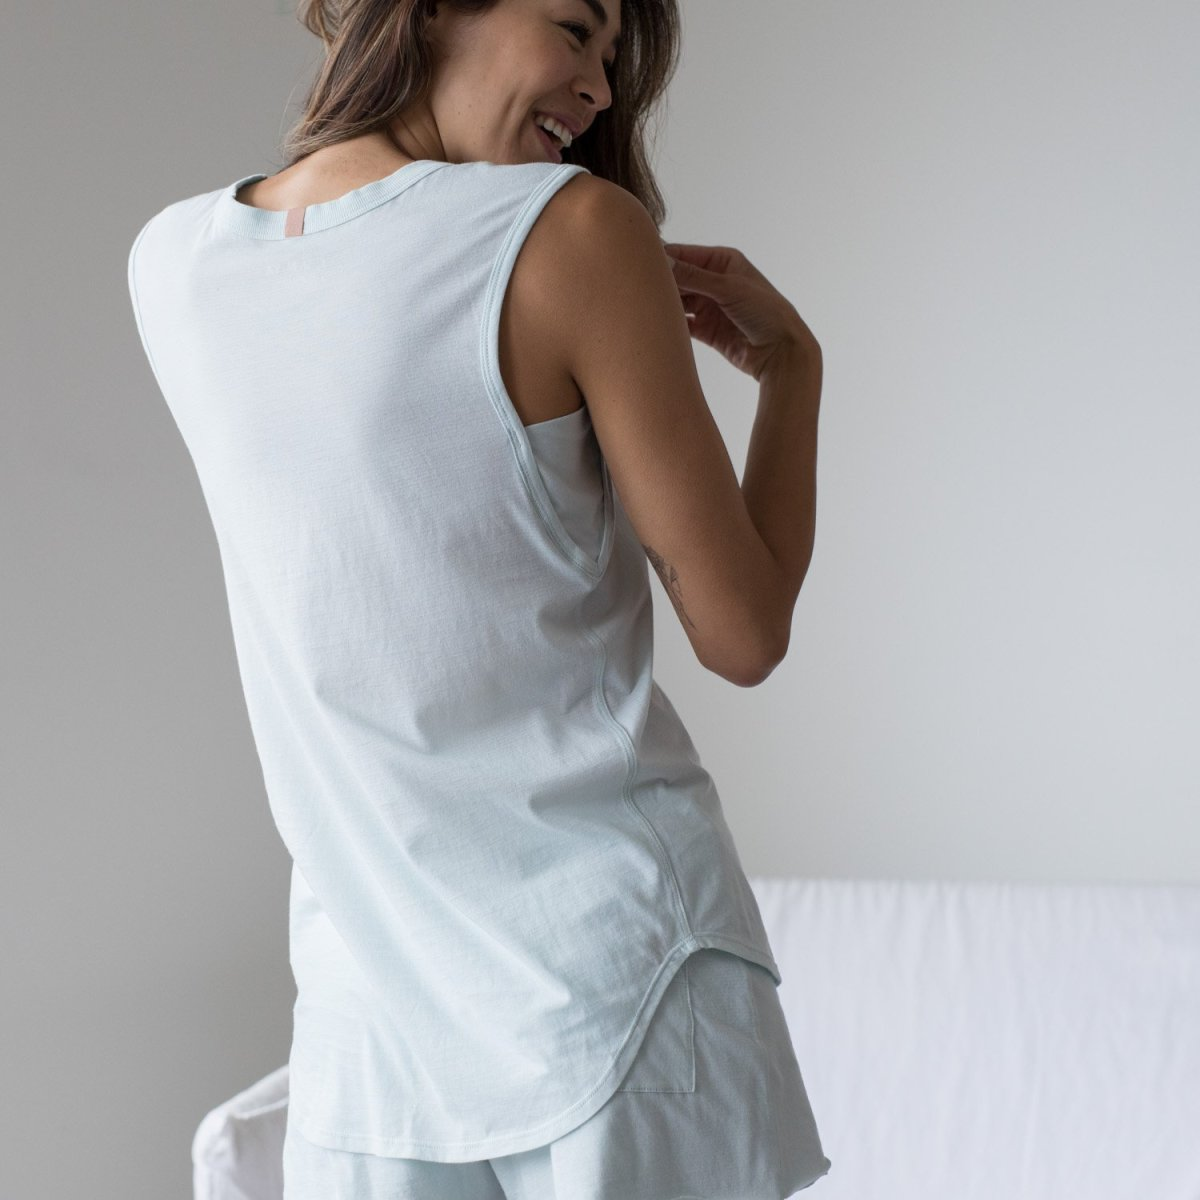 Lunya Cool Muscle Tee in Brisk, $68, available here; Lunya Cool Short in Brisk, $78, available here.